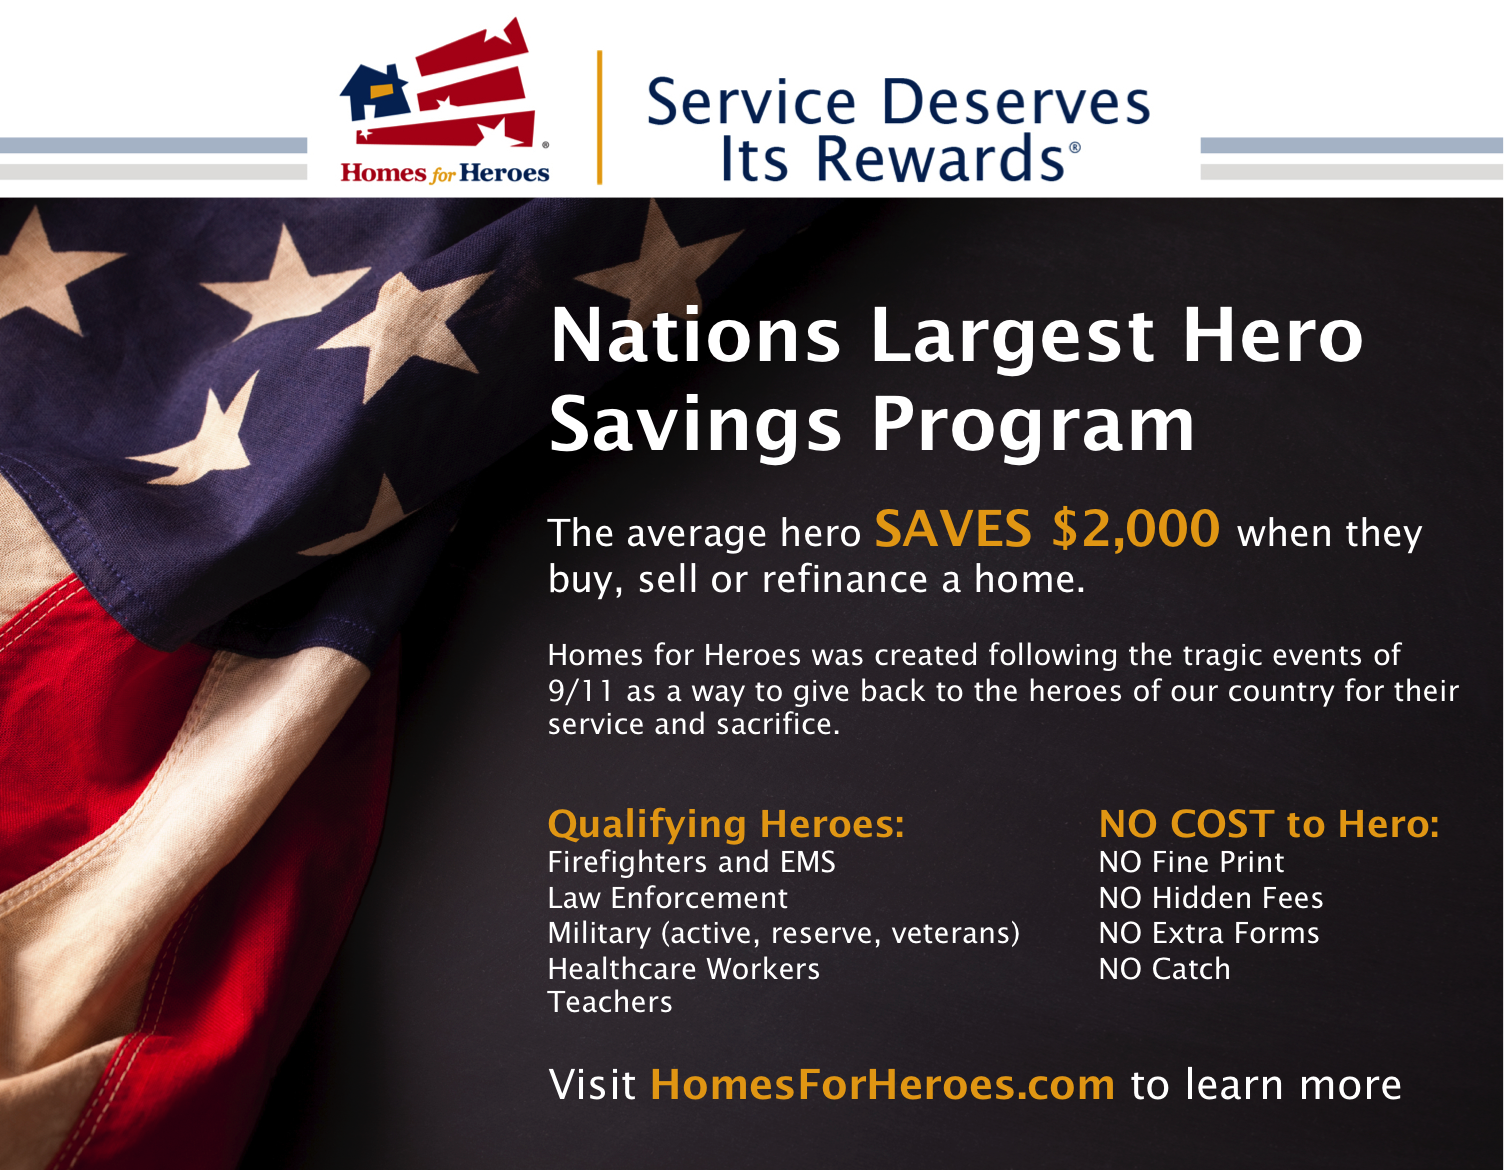 Homes for heroes giving back to our service members. Save 2,000 when you sell or refinance a home.